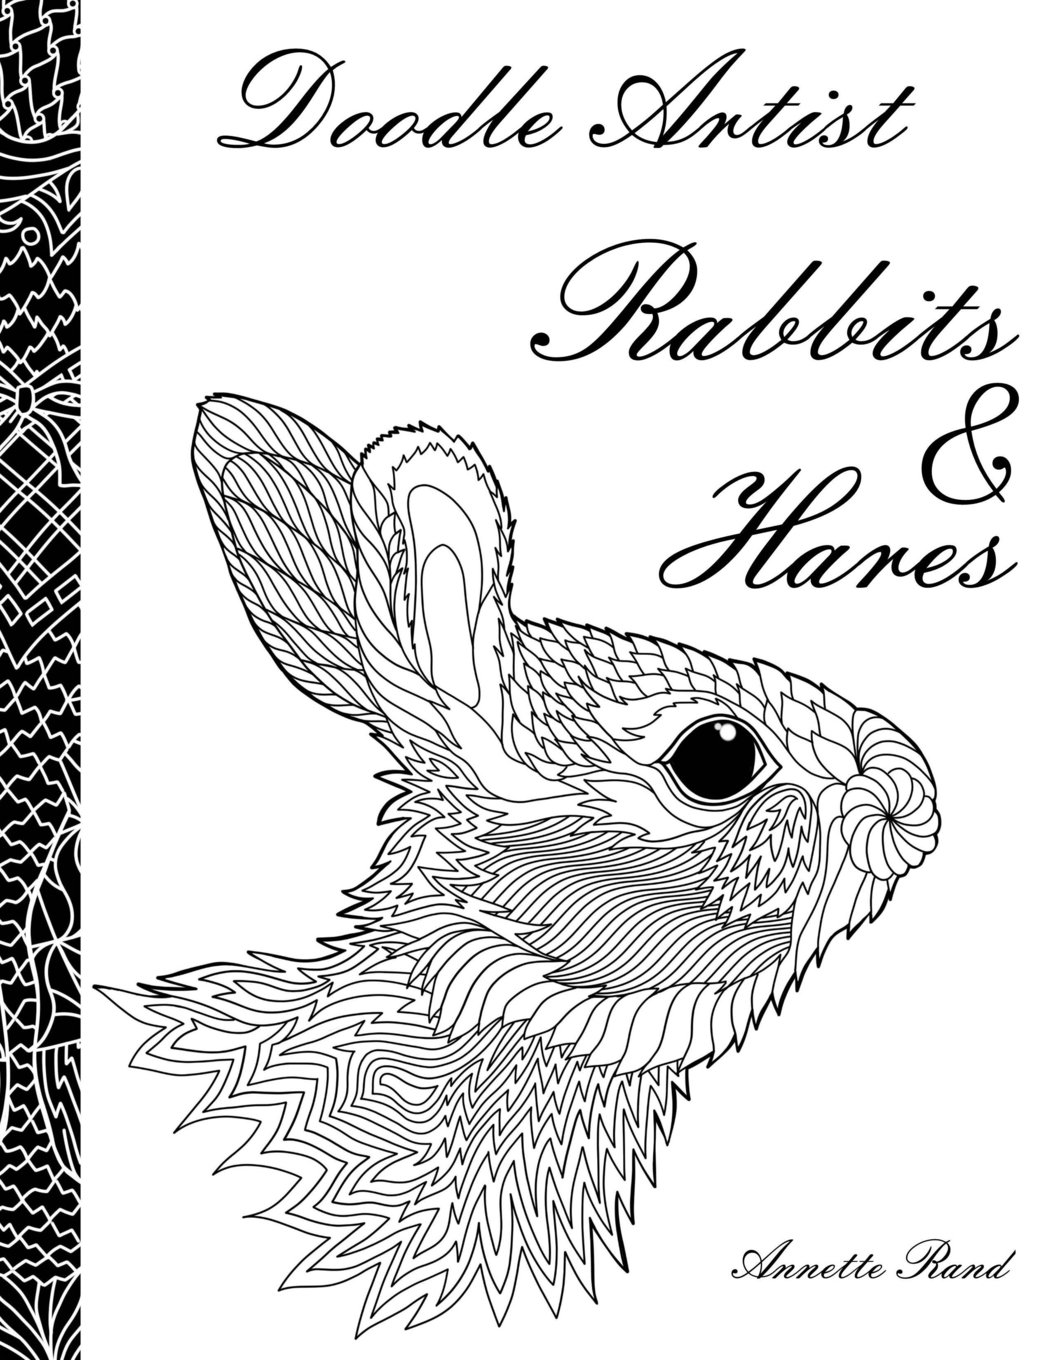 Swearing colouring in book nz - Amazon Com Doodle Artist Rabbits Hares A Colouring Book For Grown Ups 9781519452634 Annette Rand Books